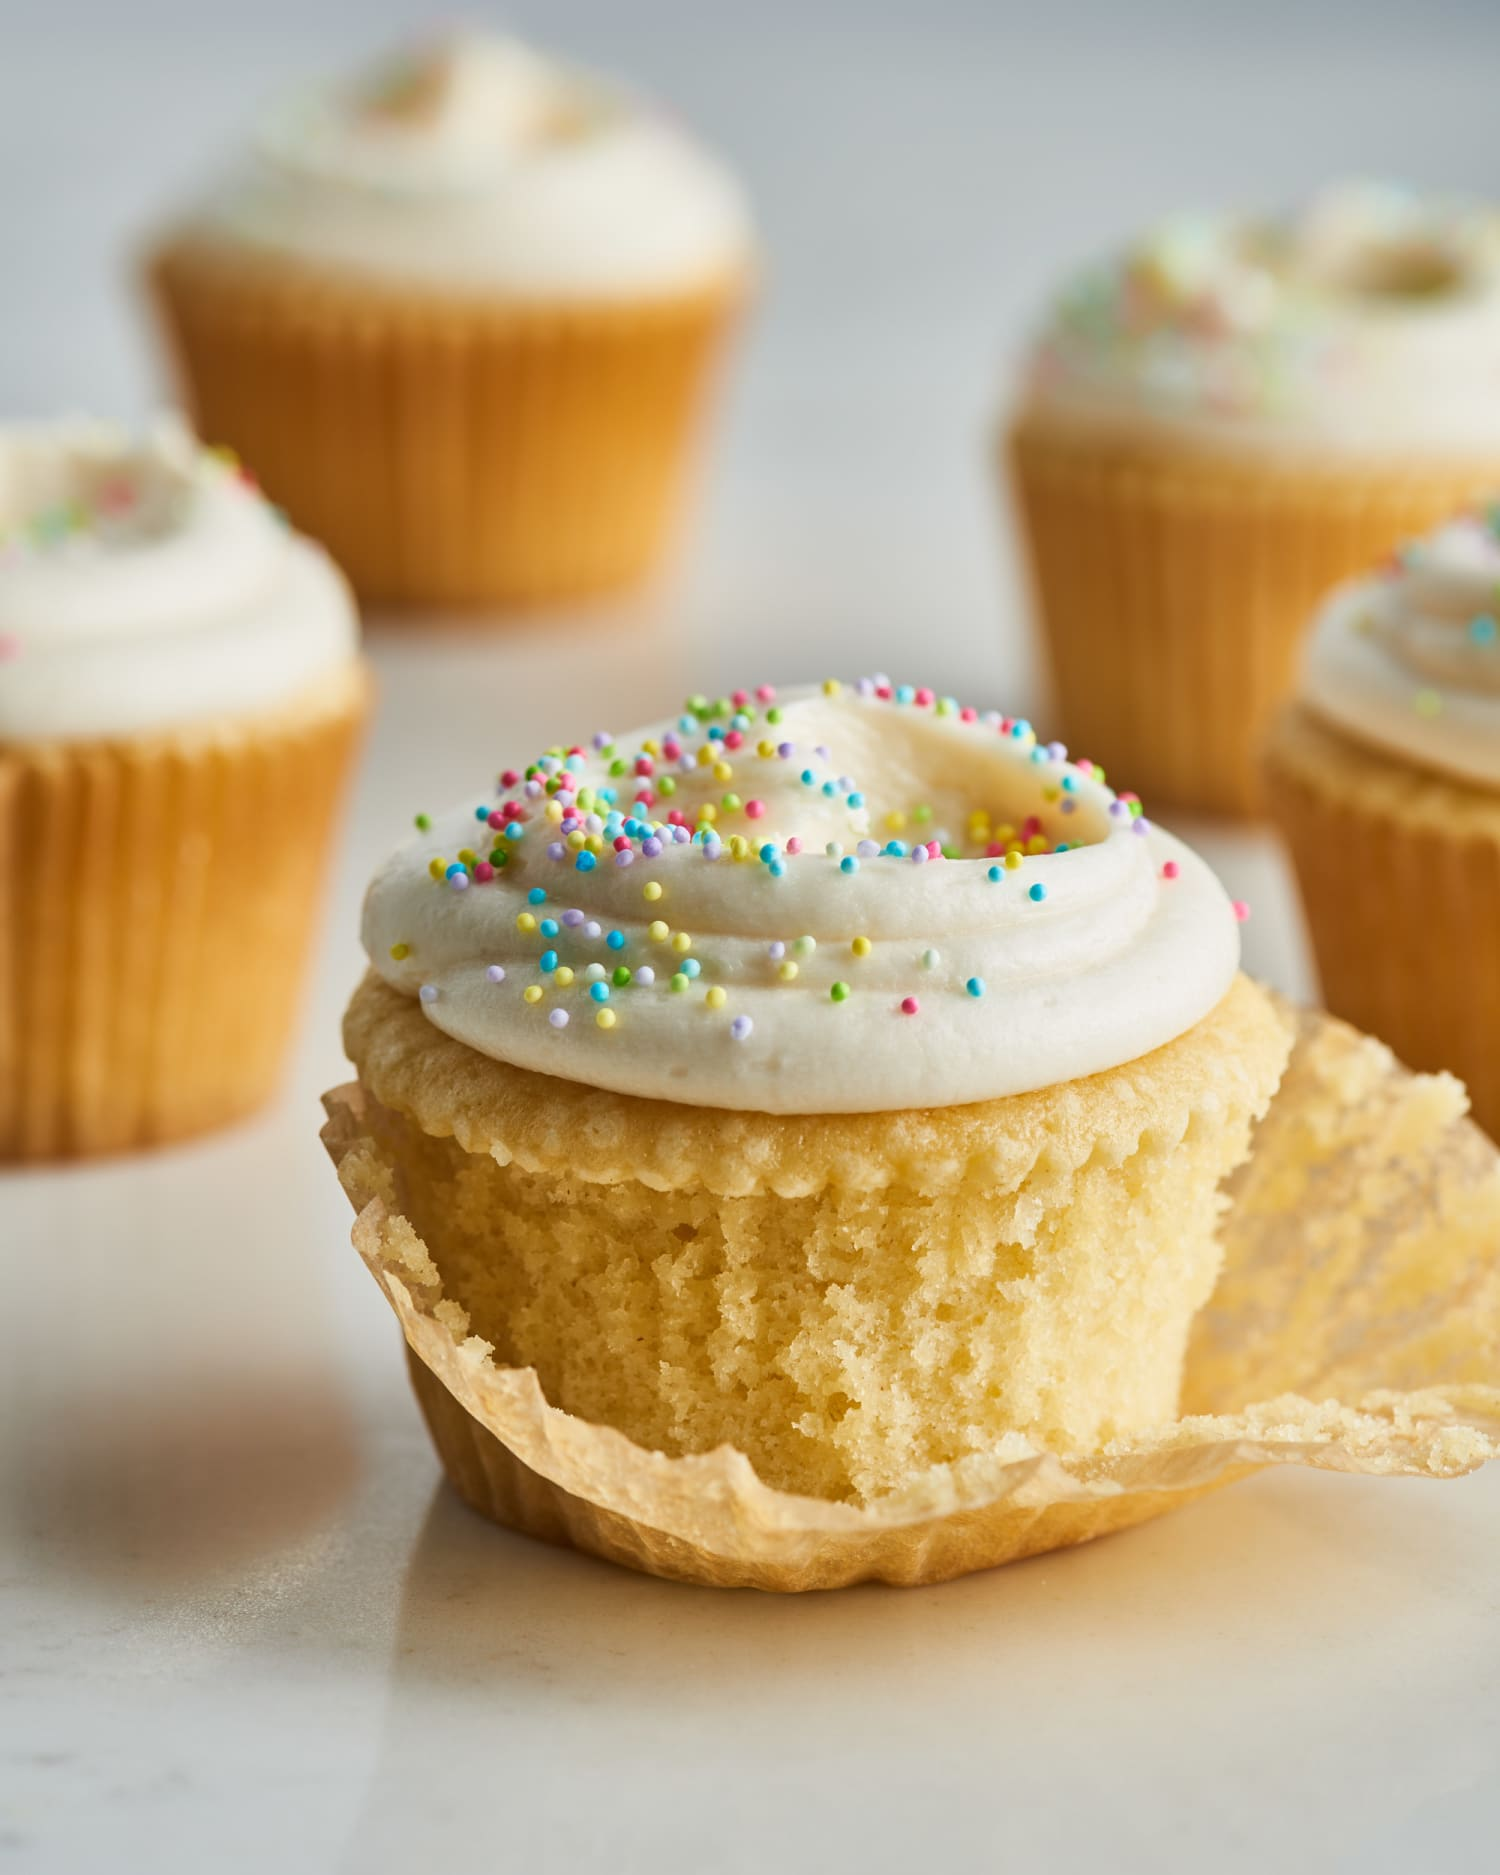 I Tried Magnolia Bakery's Vanilla Cupcake Recipe, and Now I Understand the Hype